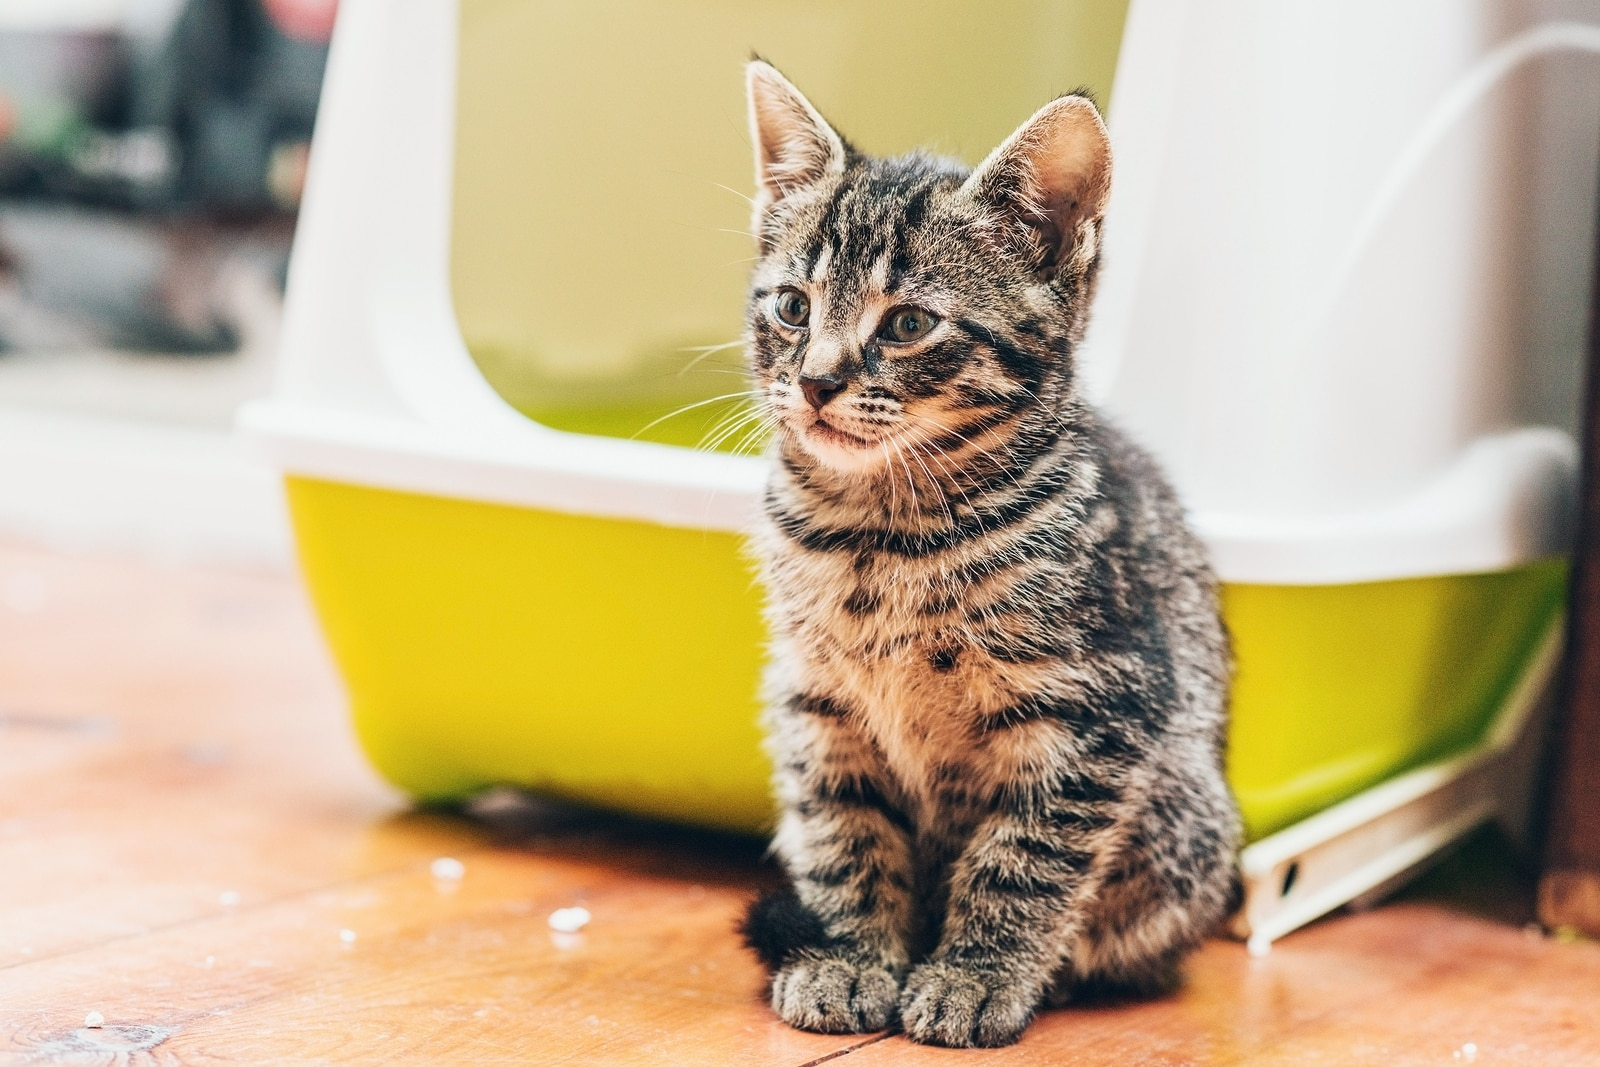 Gray striped tabby kitten sits in front of bright yellow litter box.